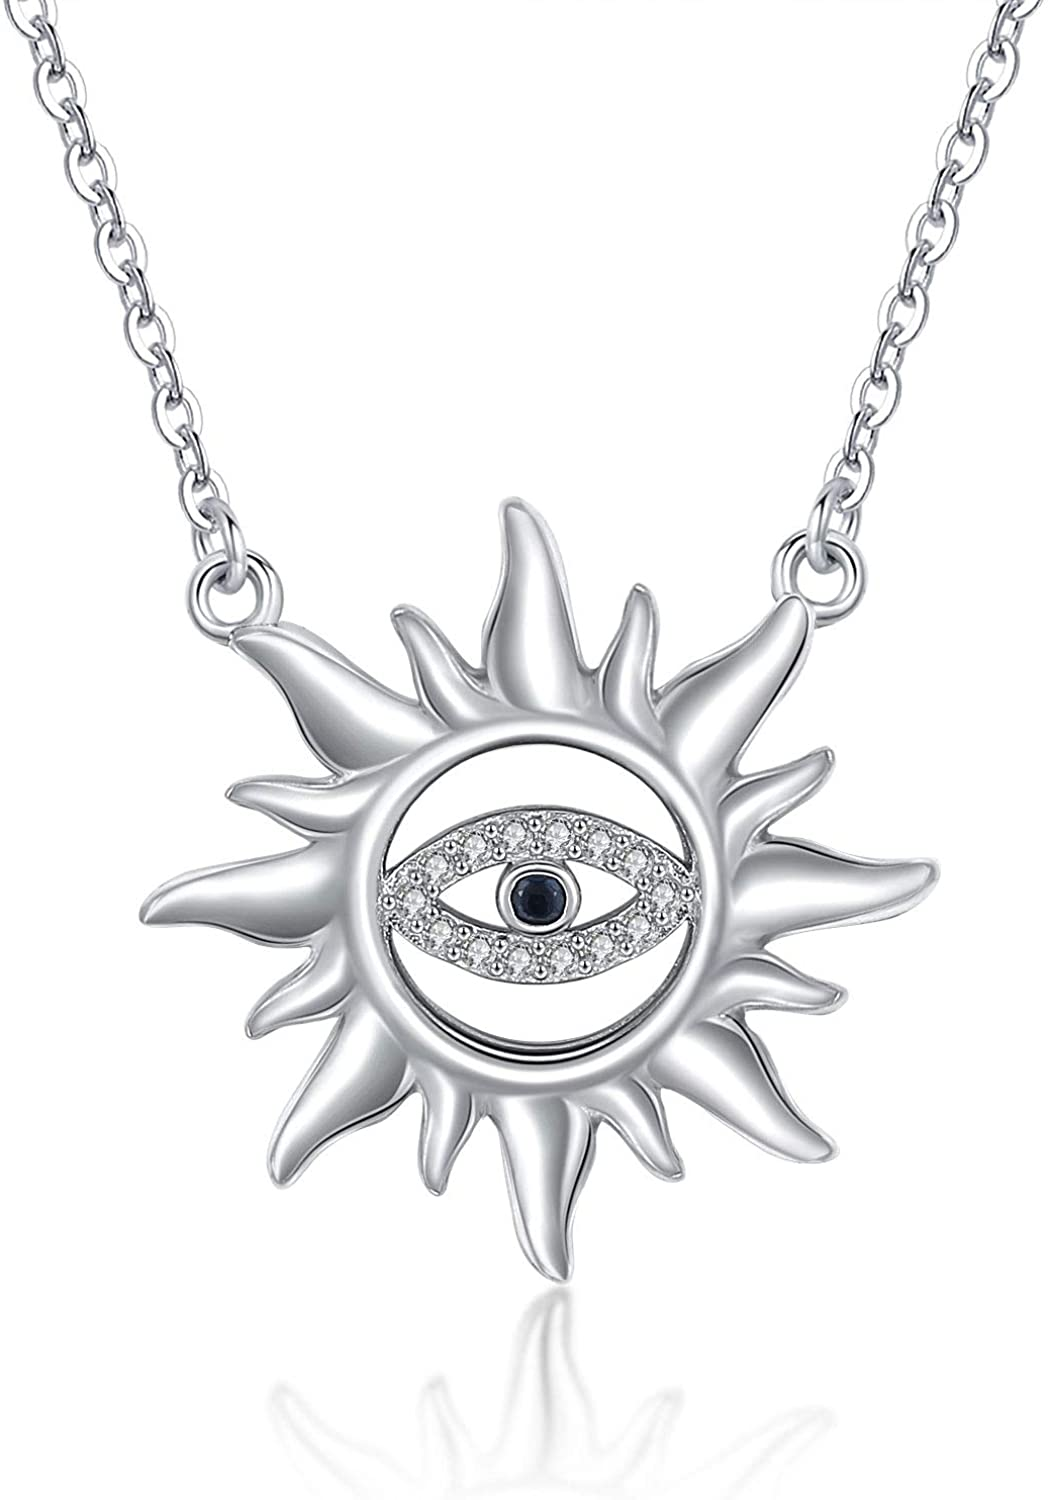 TRISHULA Sun Sunlight Pendant Necklace with Evil Eye, 925 Sterling Silver Sunshine Sunburst Pendant, Evil Eye Charm Jewelry Gift for Women Girl Mom Daughter Wife